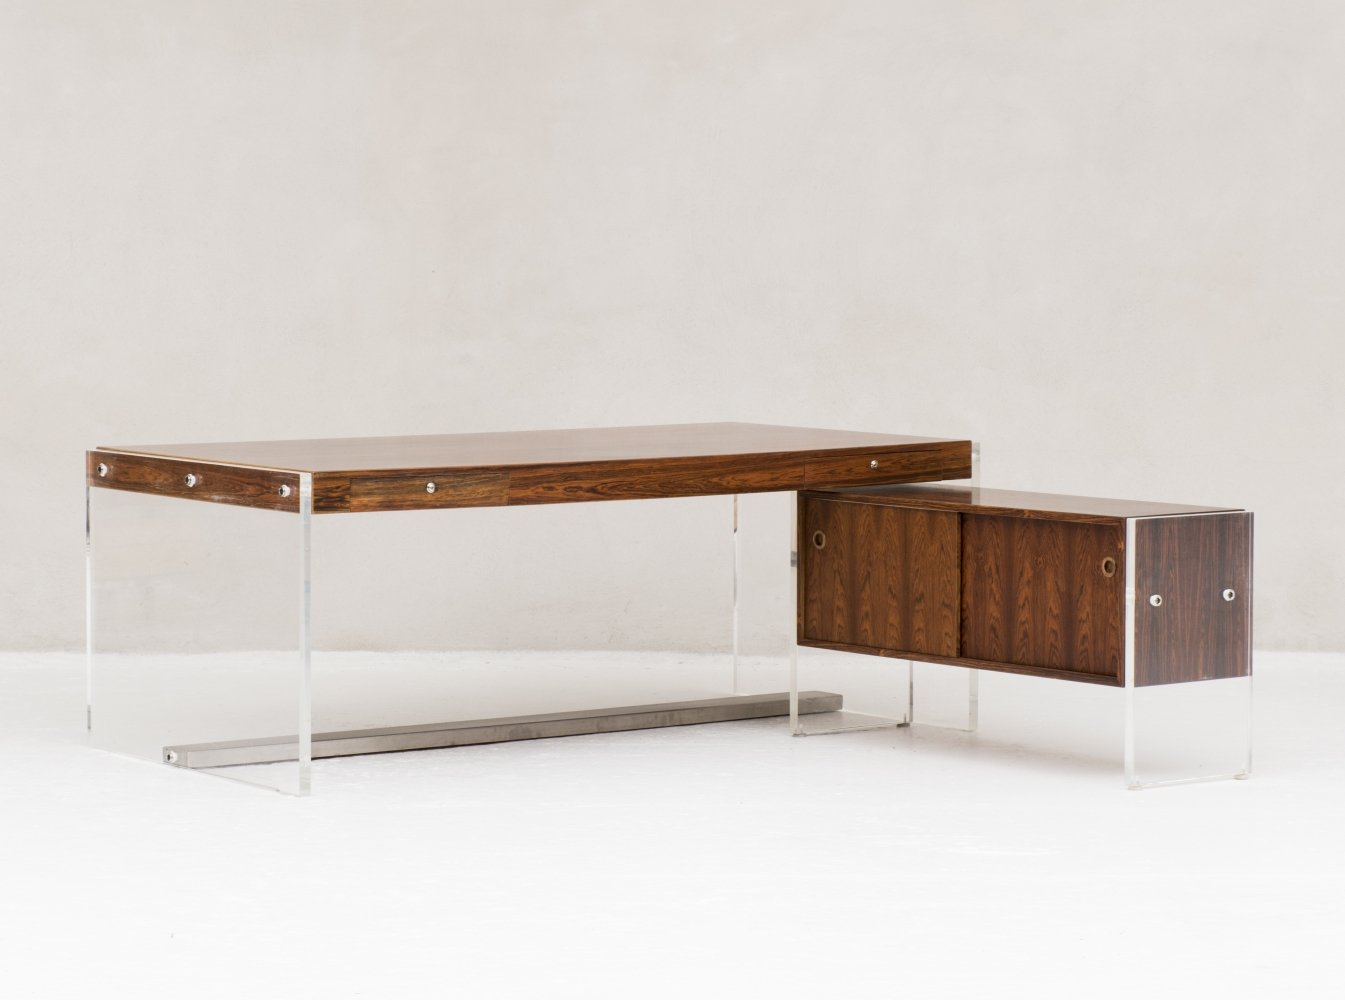 Rosewood writing desk with dresser produced in Denmark, 1960